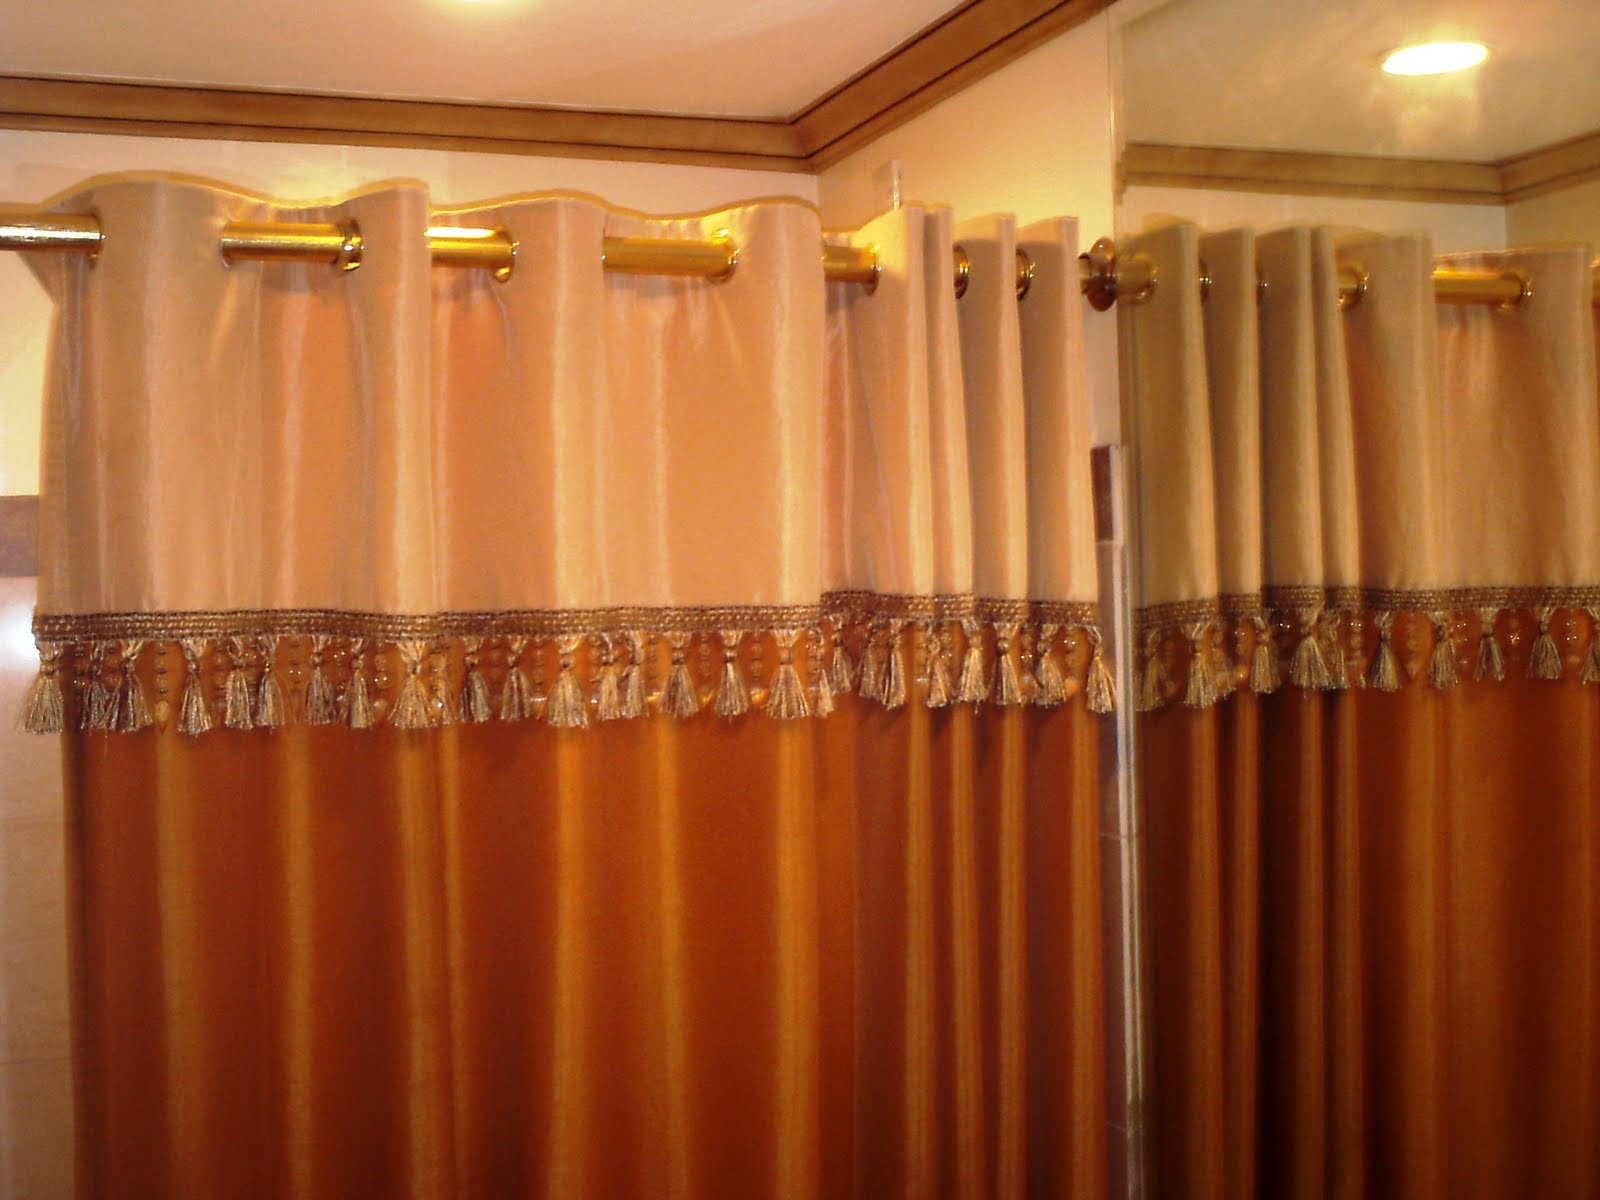 PHOTOS OF HOME INTERIOR DECORS Elegant Shower Curtain